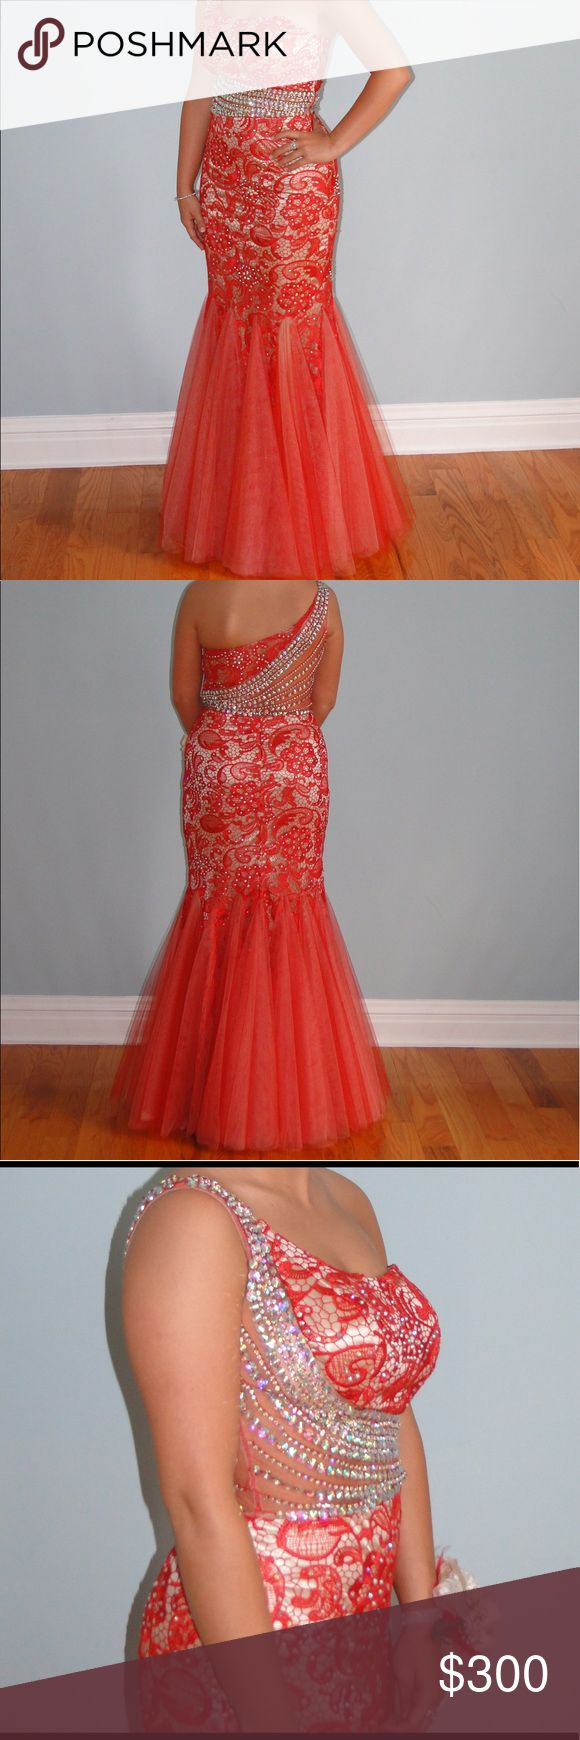 Prom dress Great condition, worn once, freshly dry cleaned Panoply  Dresses Prom